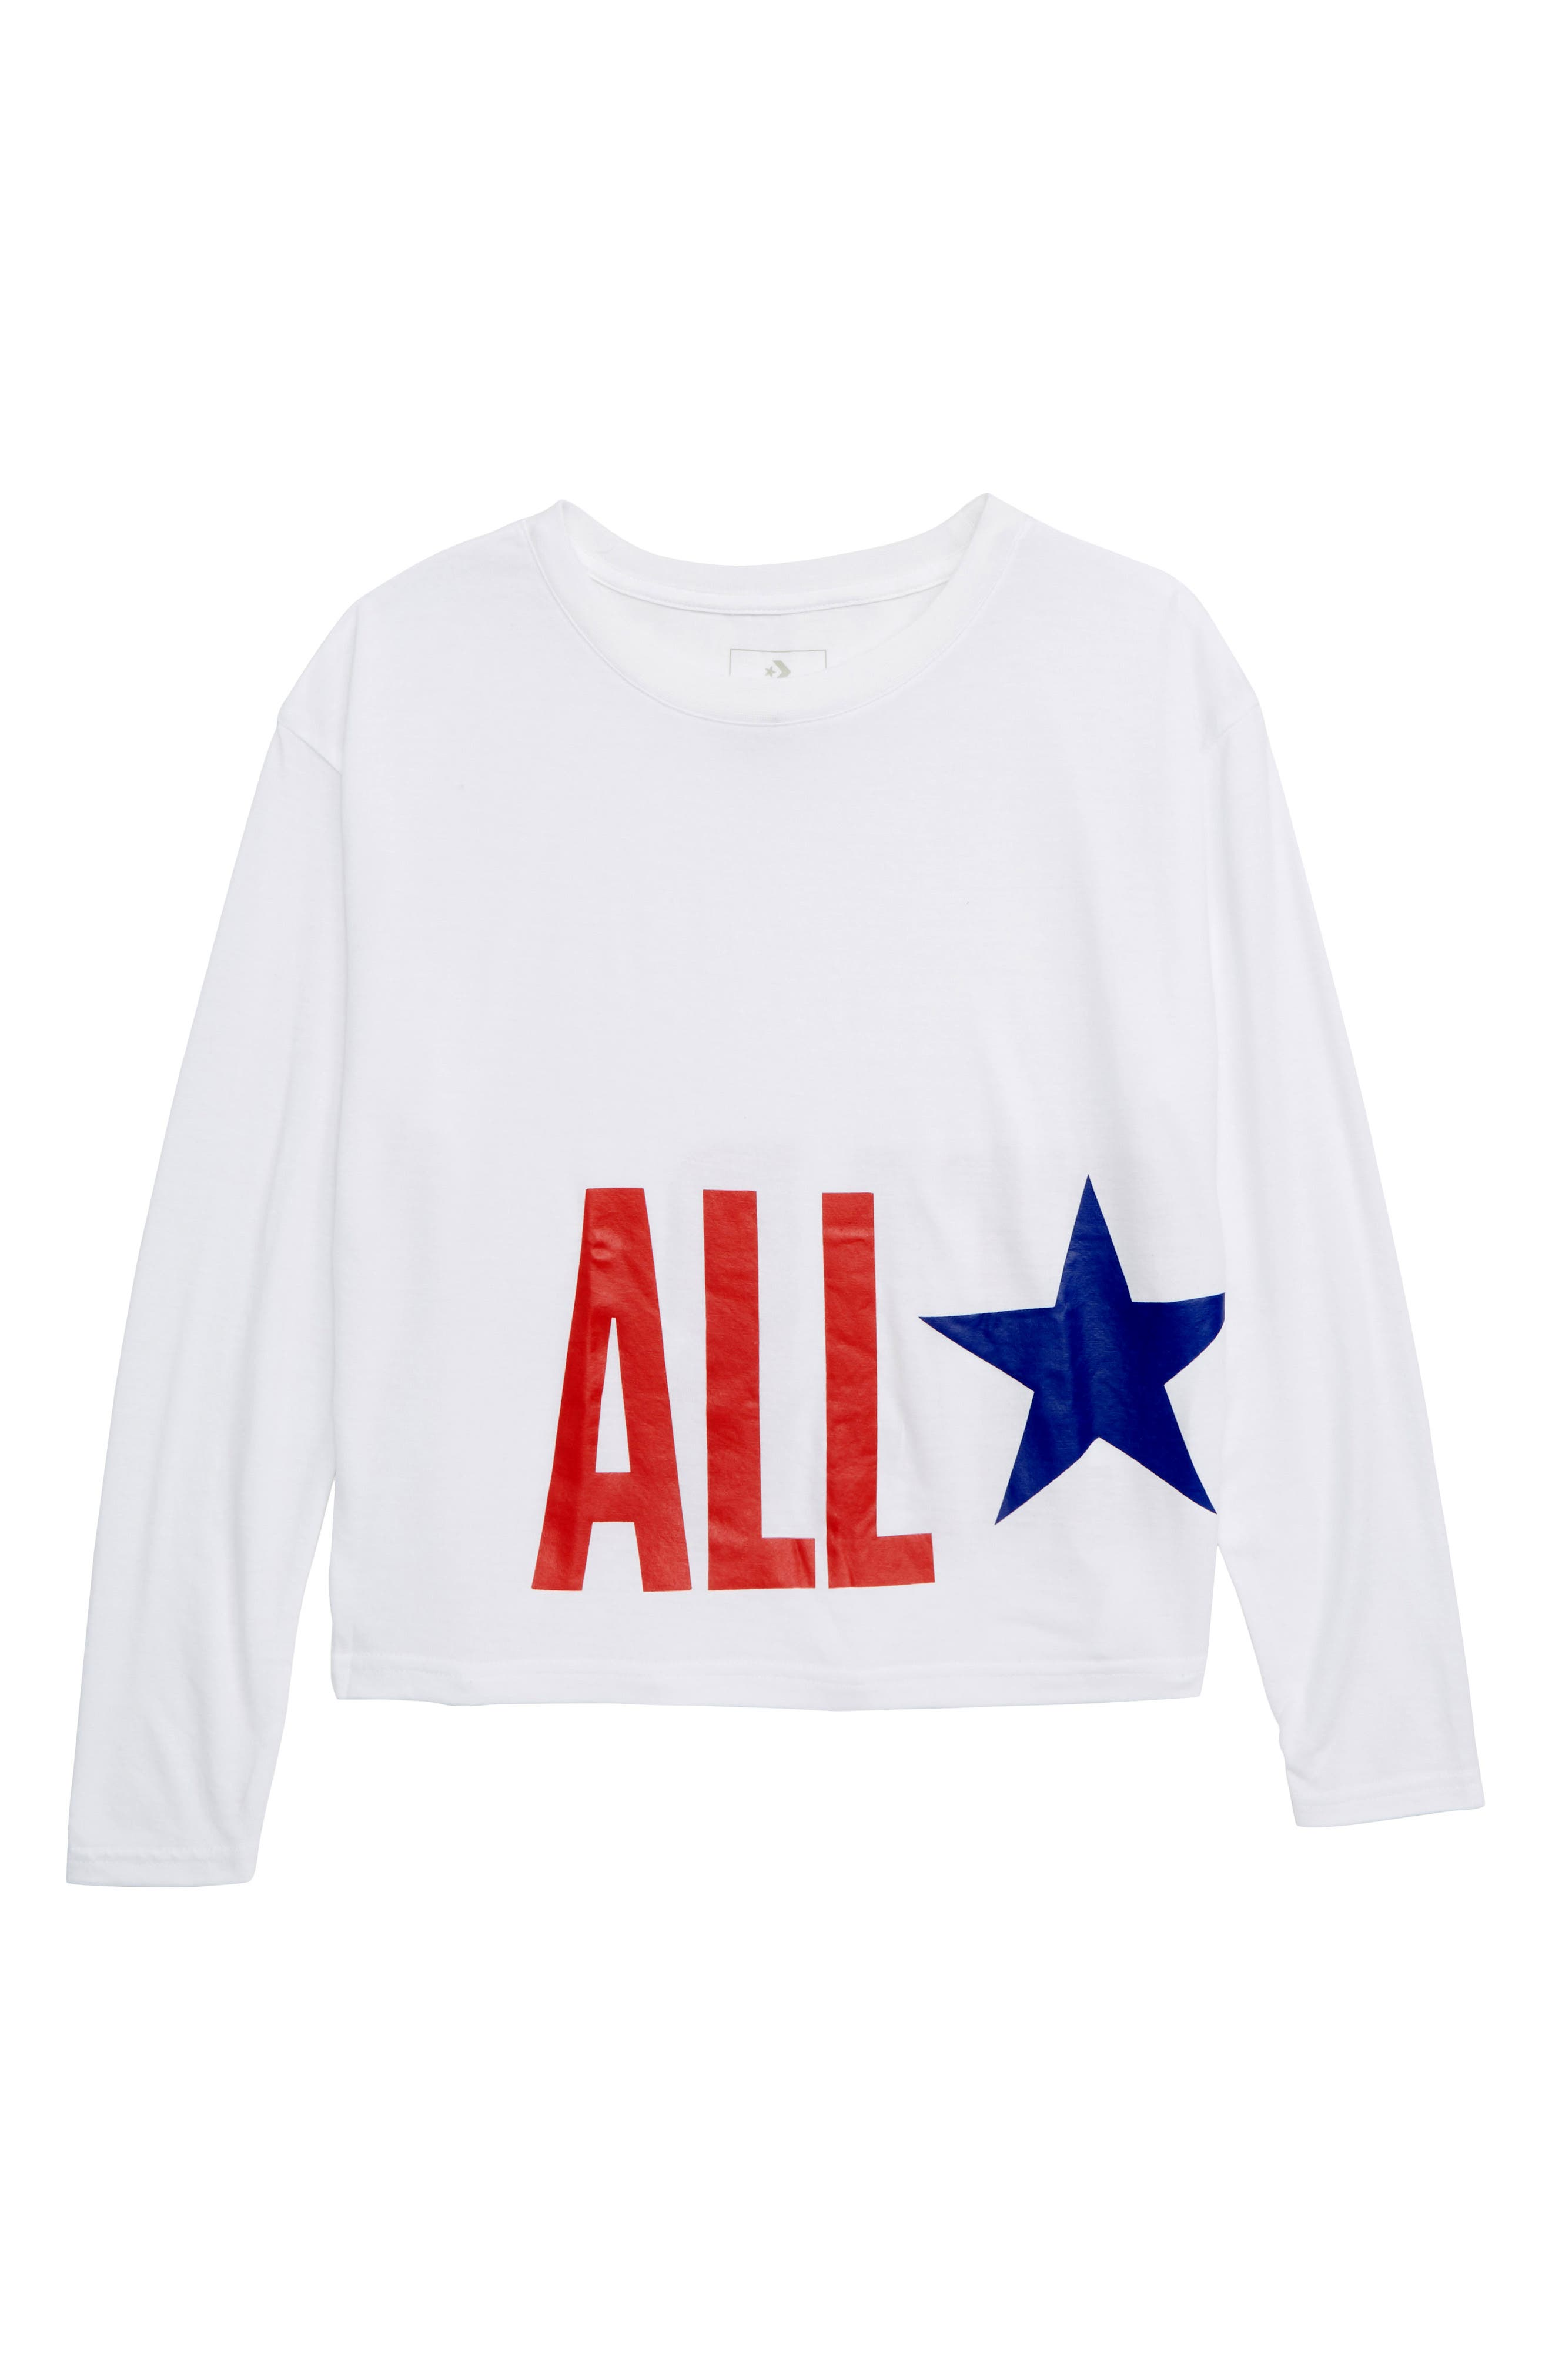 All Star<sup>®</sup> Oversize Long Sleeve Tee,                         Main,                         color, WHITE